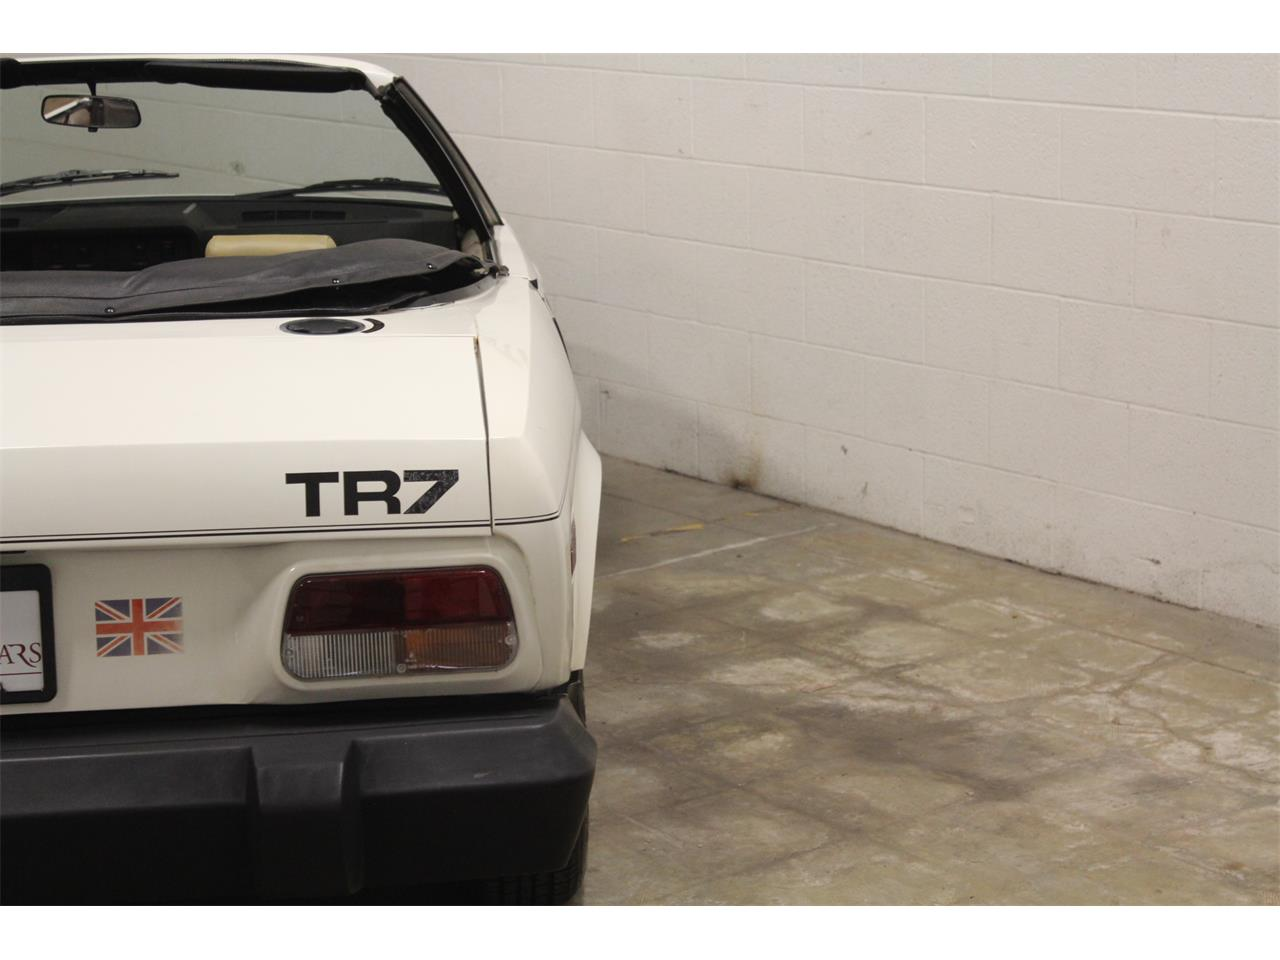 Large Picture of '79 Triumph TR7 located in Cleveland Ohio - $7,950.00 Offered by MB Vintage Cars Inc - Q5UK